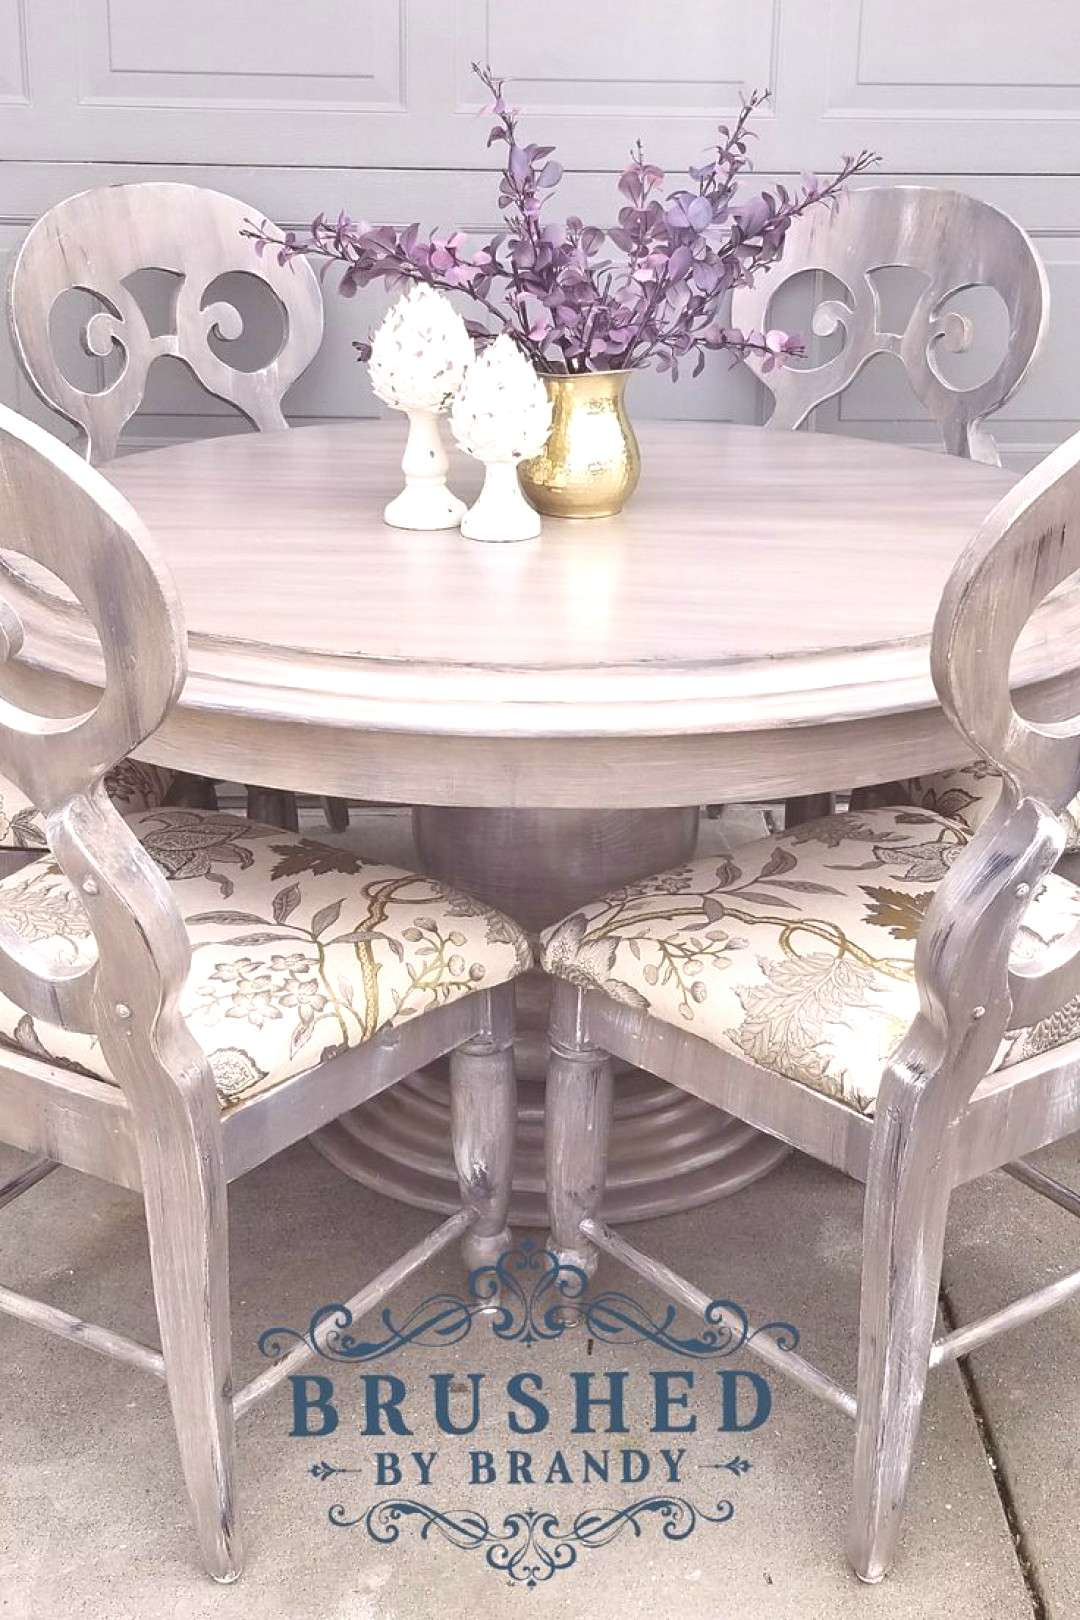 I picked up this incredible dining set off Facebook marketplace. It caught my eye because of the pe